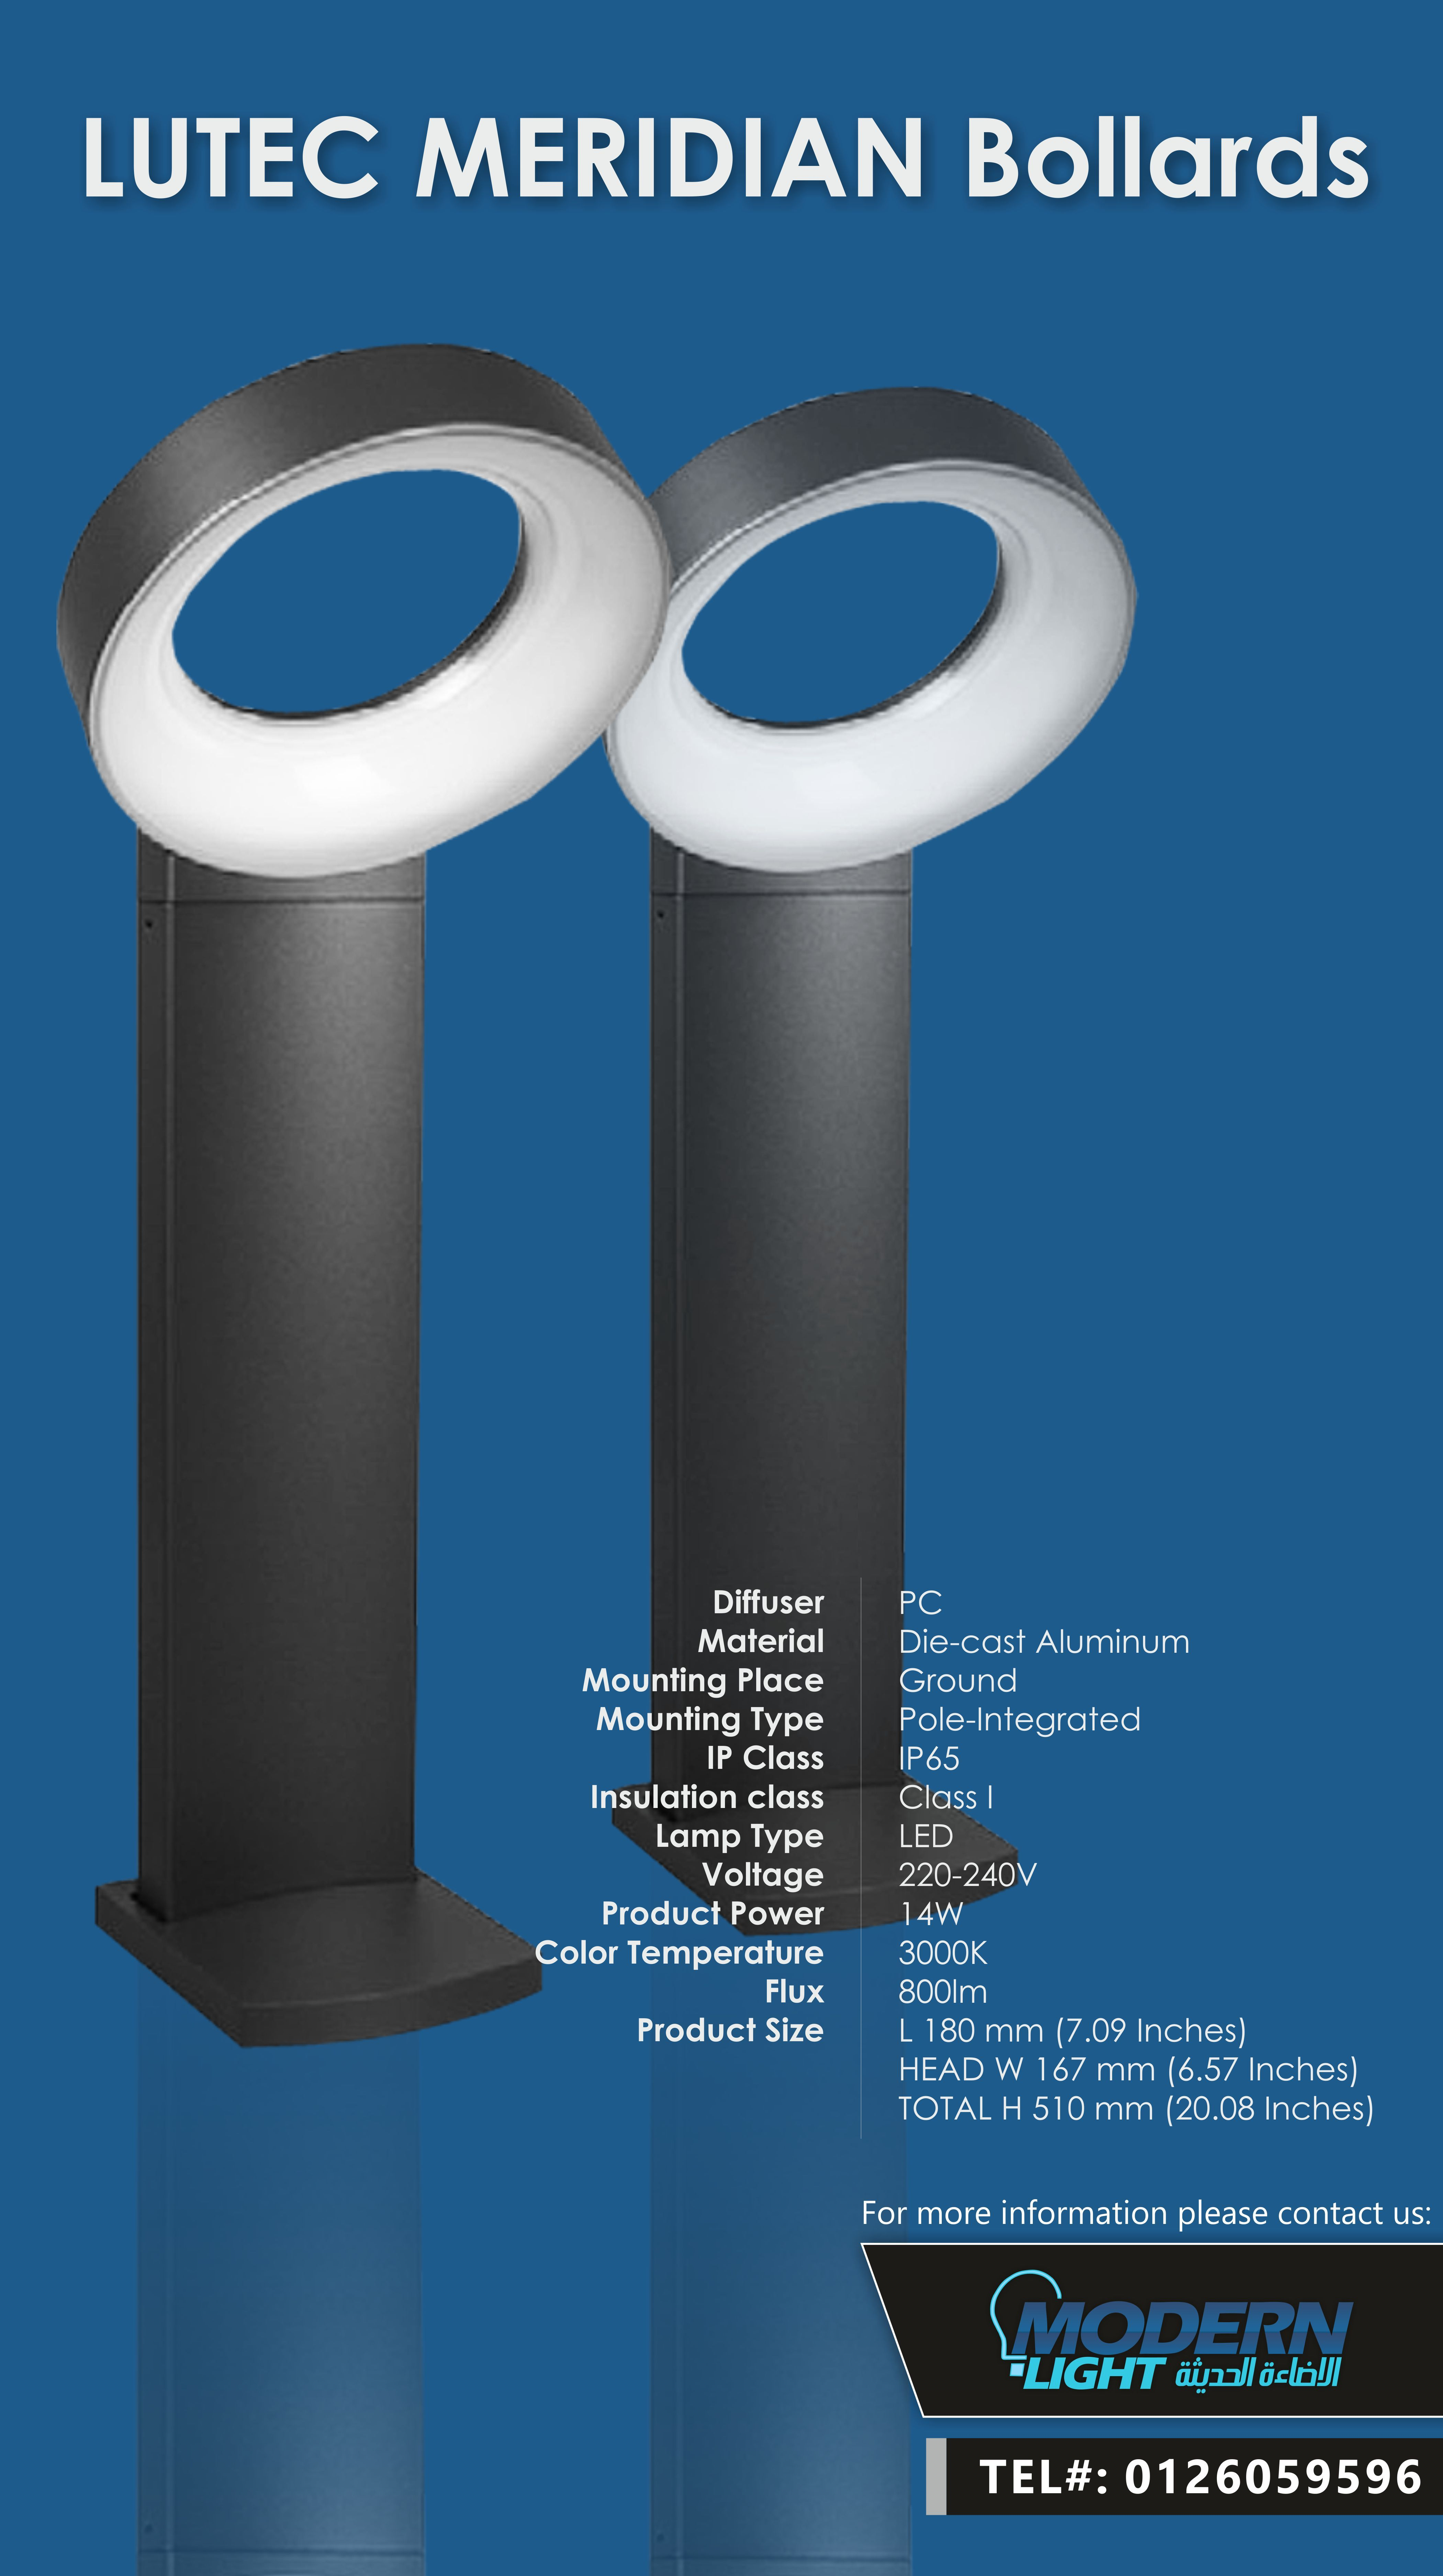 Led Leuchtbänder Lutec Led Meridian Bollard Only At Modernlight Jeddah Tel